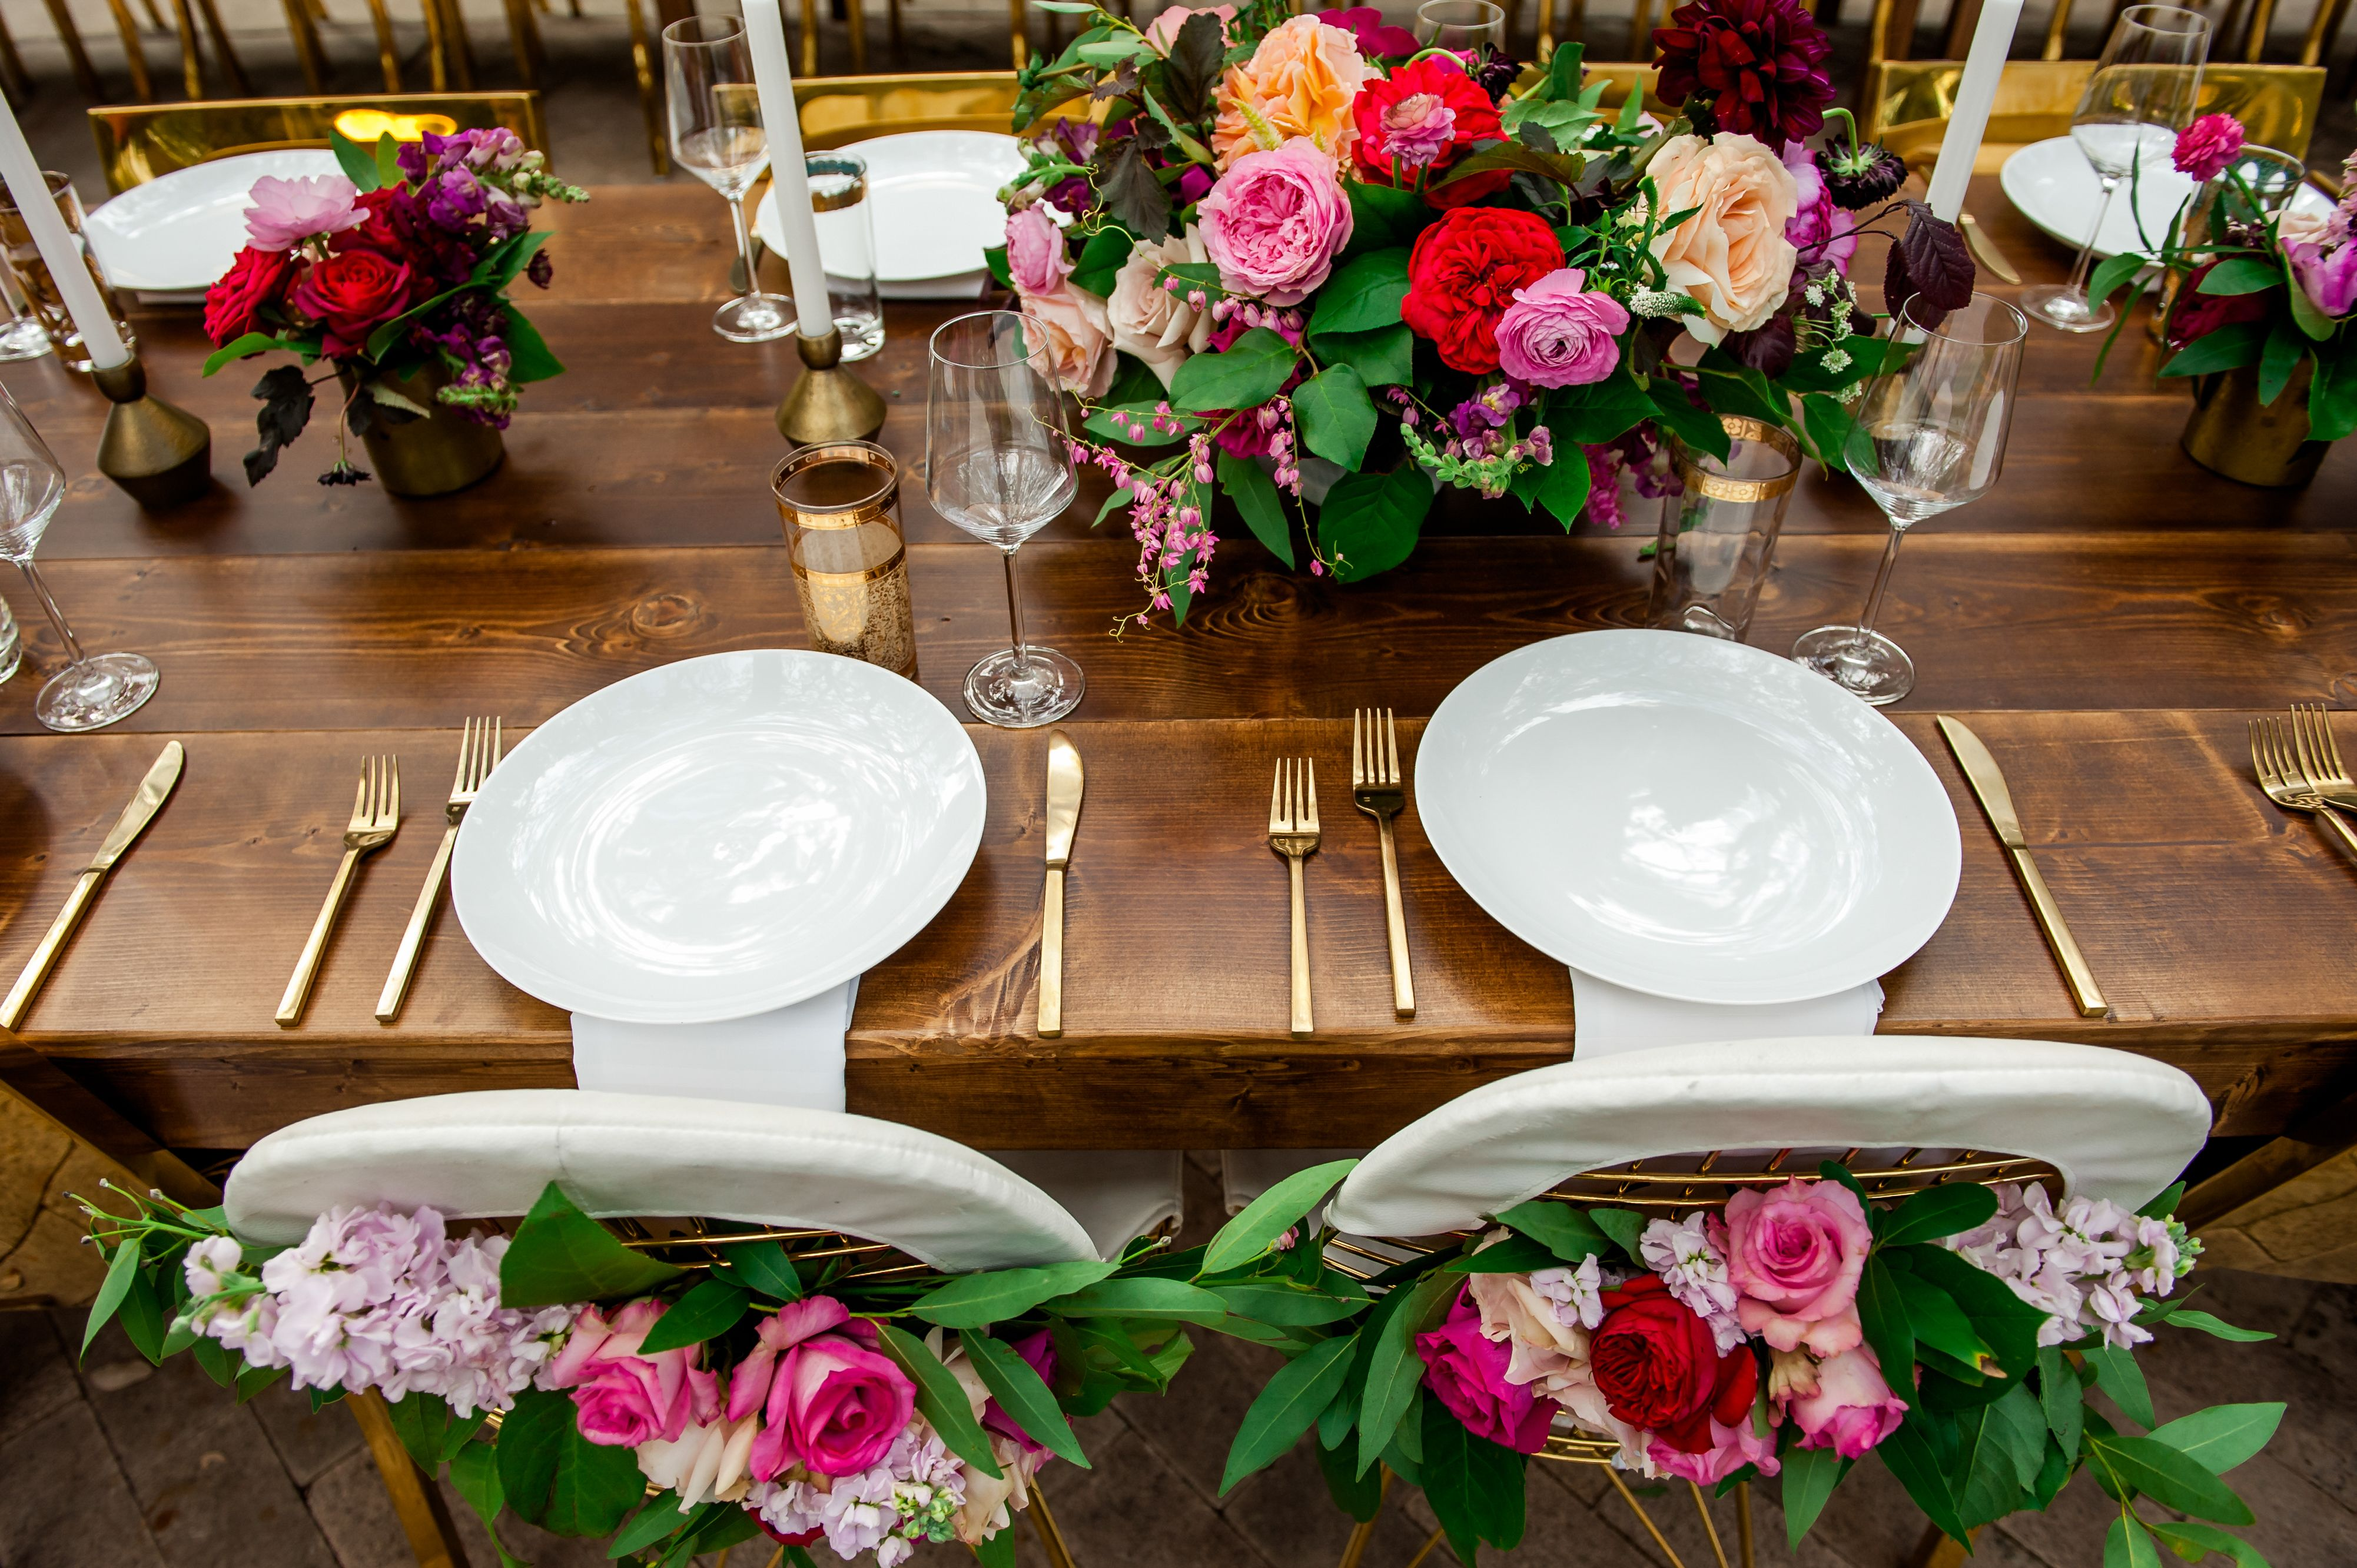 Leather Gold Modern Sweetheart Chairs Romantic Garden Wedding At Hotel St Cecilia Vintage Renta Modern Furnishings Romantic Garden Wedding Sweetheart Chair